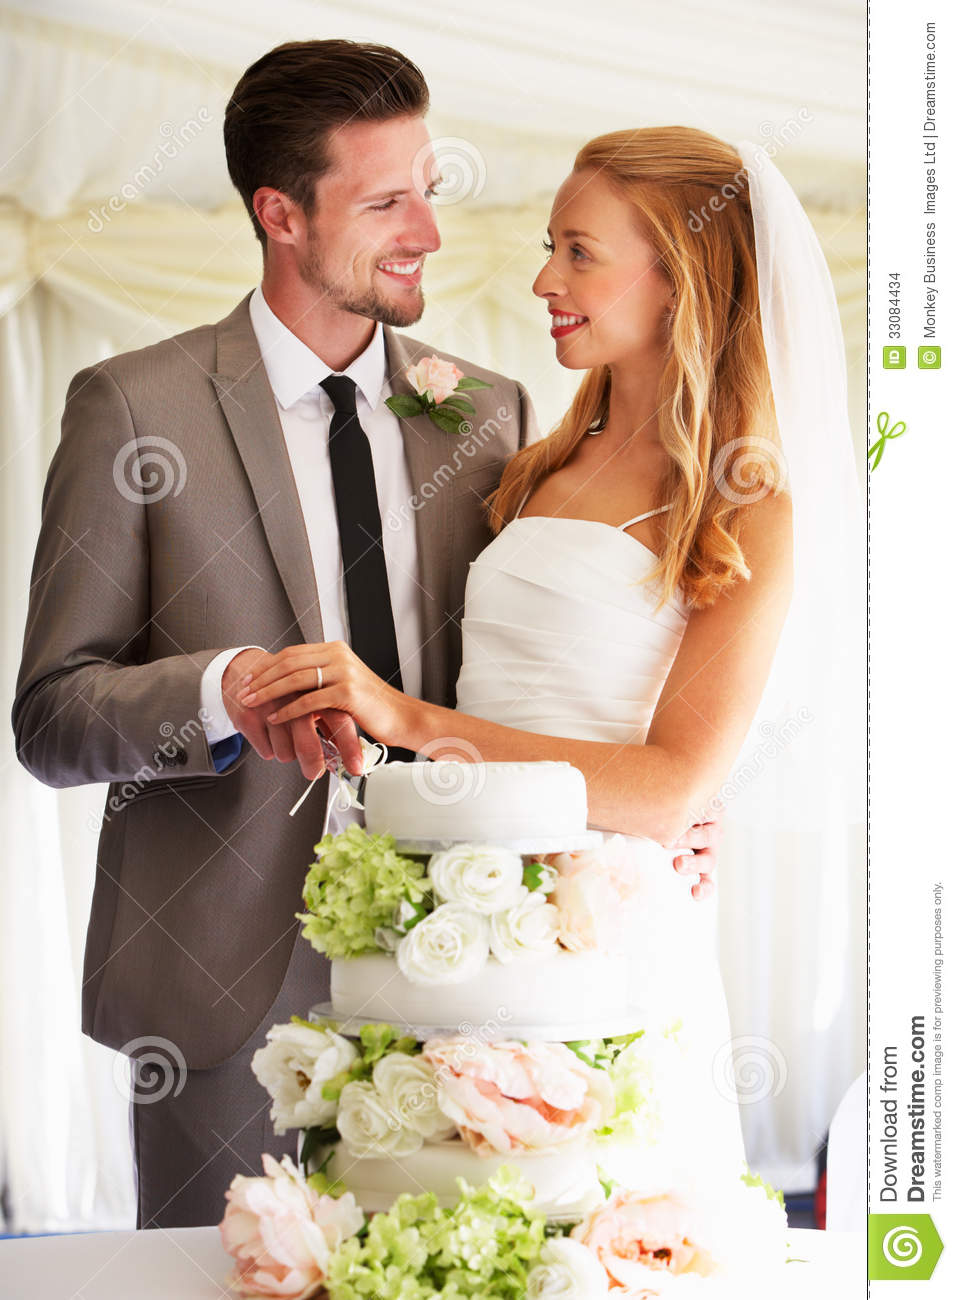 how does the bride and groom cut wedding cake and groom cutting wedding cake at reception stock 15365